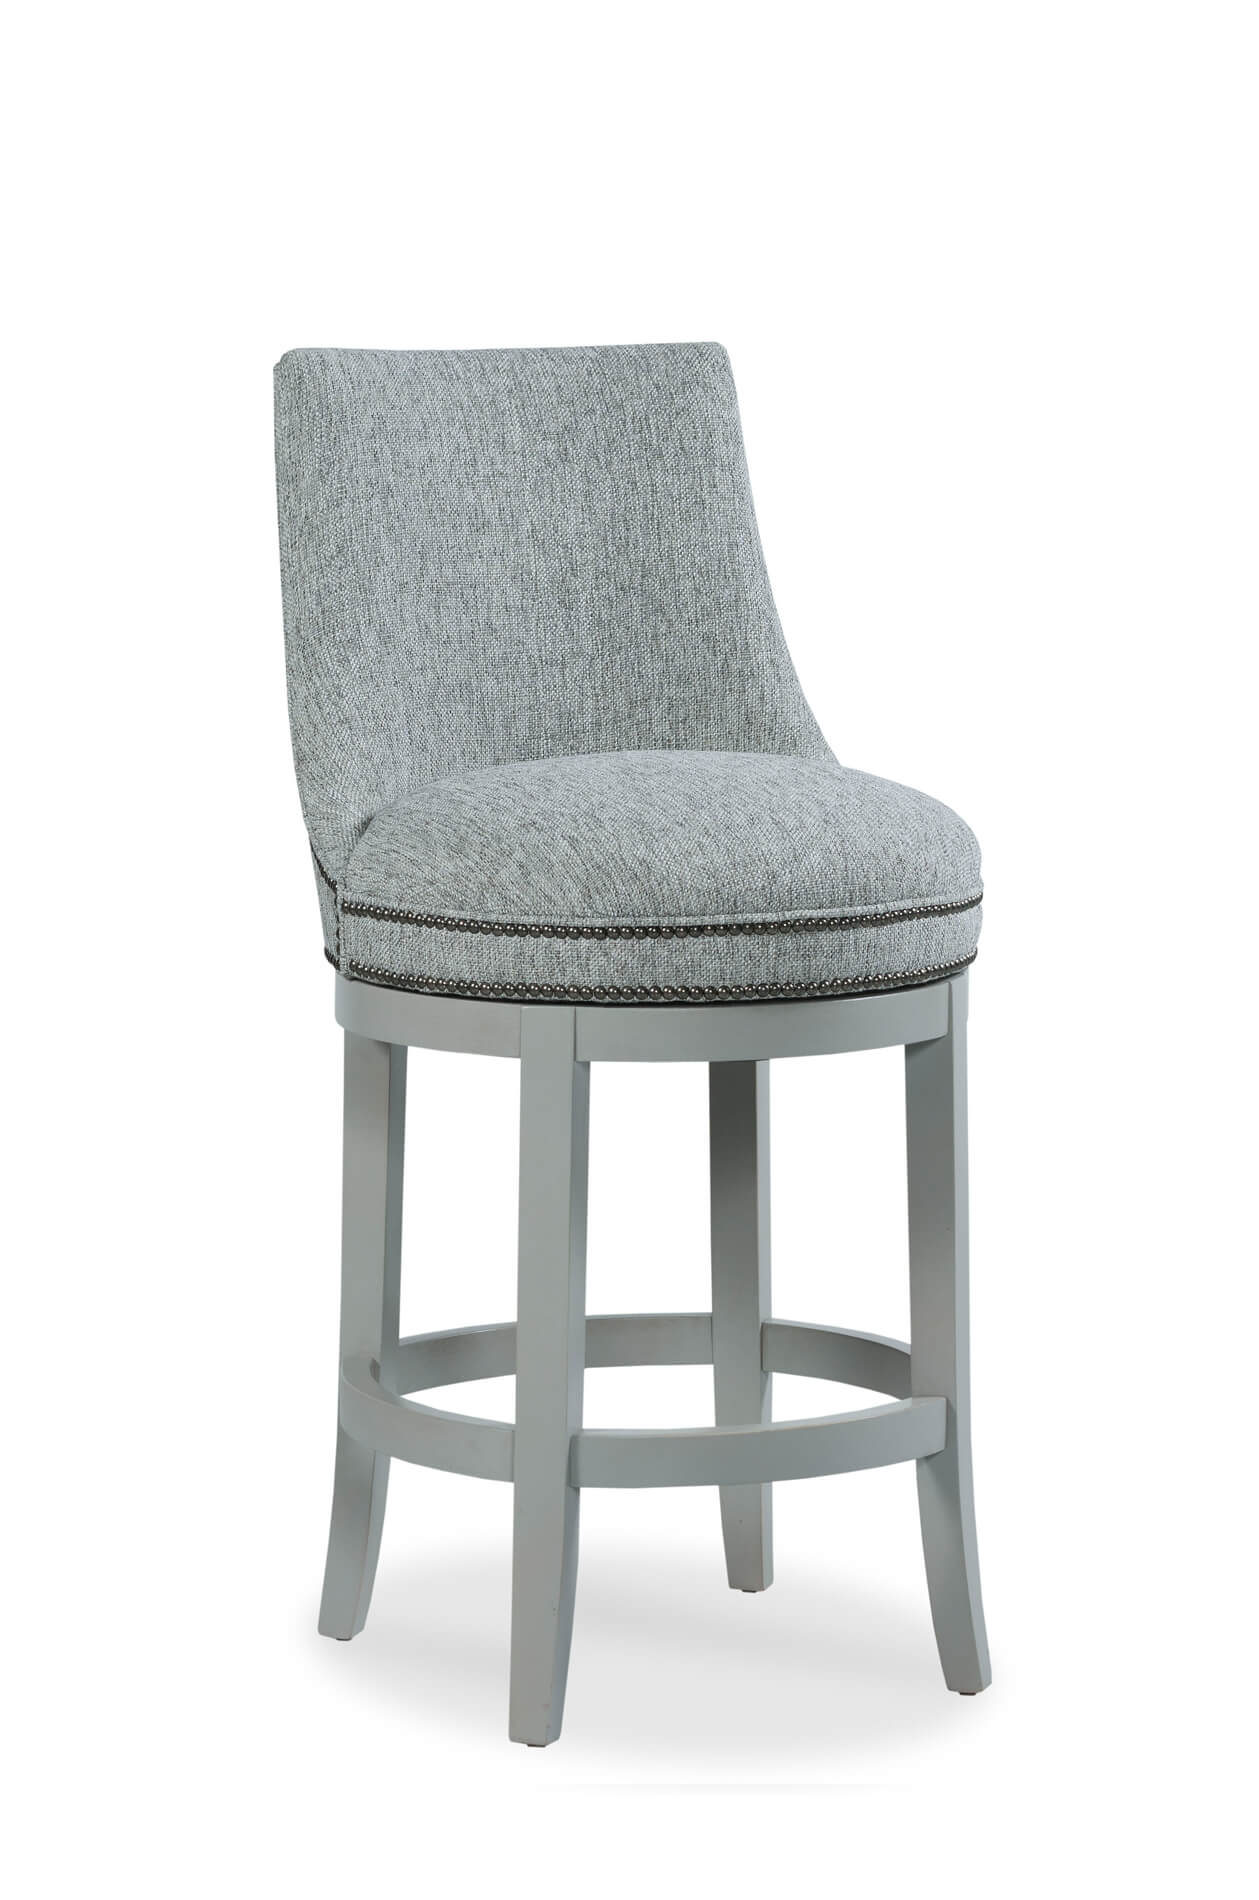 Upholstered Swivel Chairs Vesper Wooden Upholstered Swivel Stool